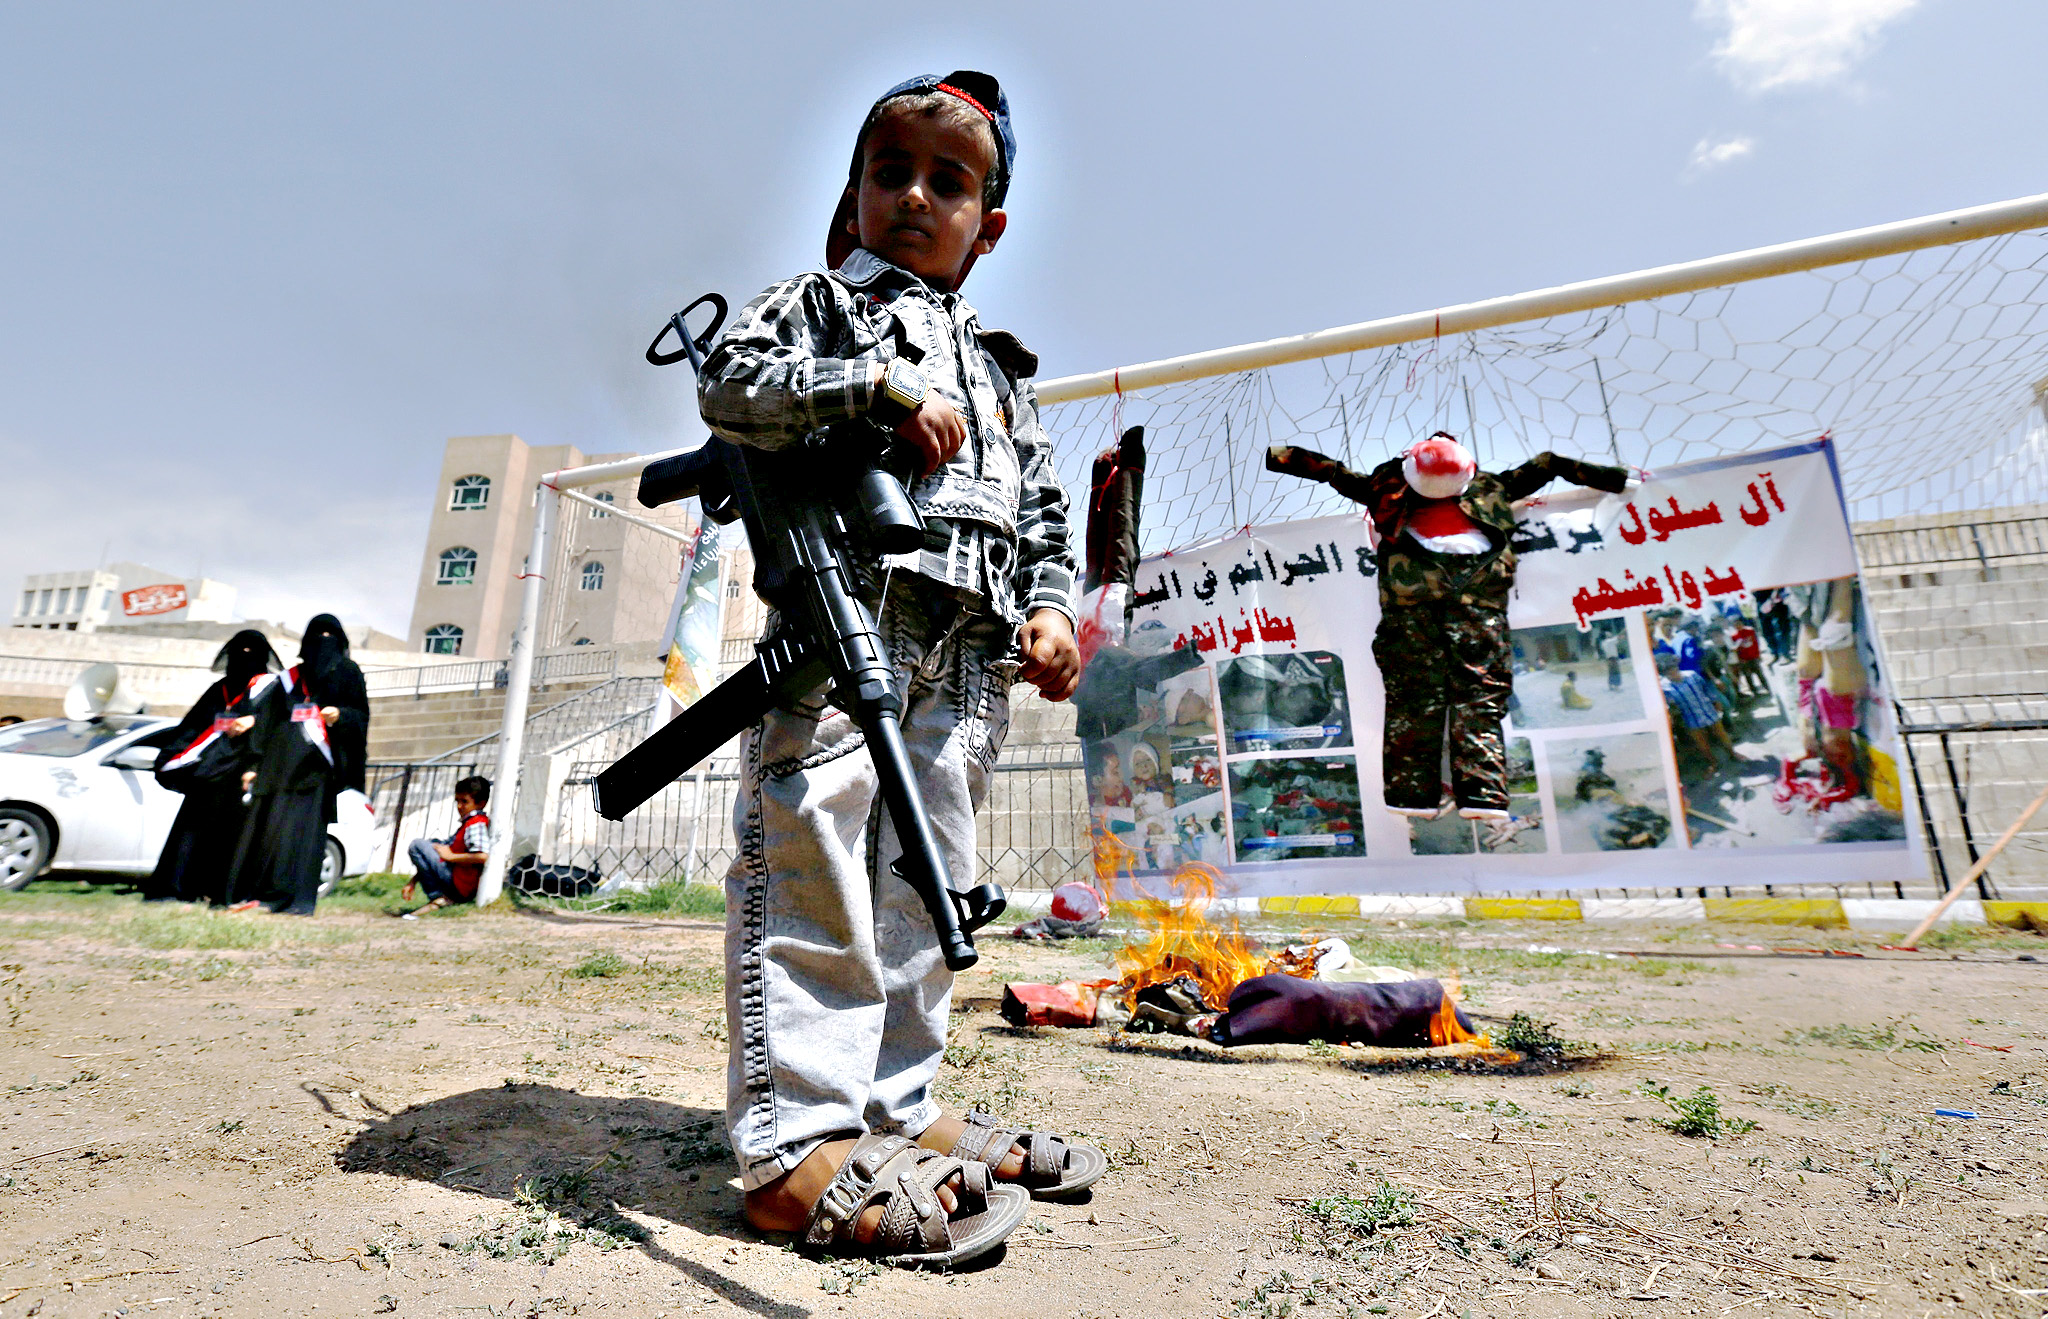 A young Yemeni holds an automatic weapon stands near effigies depicting the victims of the ongoing conflict during a rally against the military offensive carried out by the Saudi-led coalition, in Sanaa, Yemen